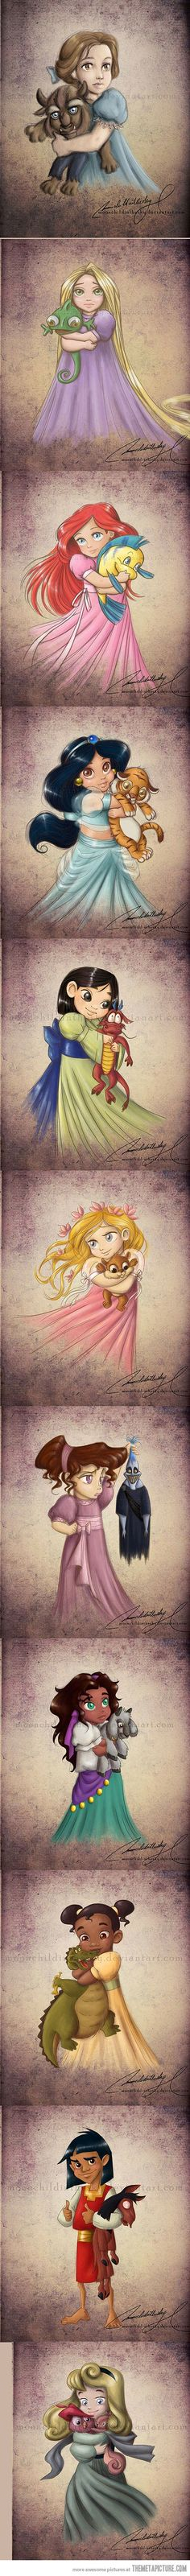 Little Disney Princesses and Their Pets - The Meta Picture